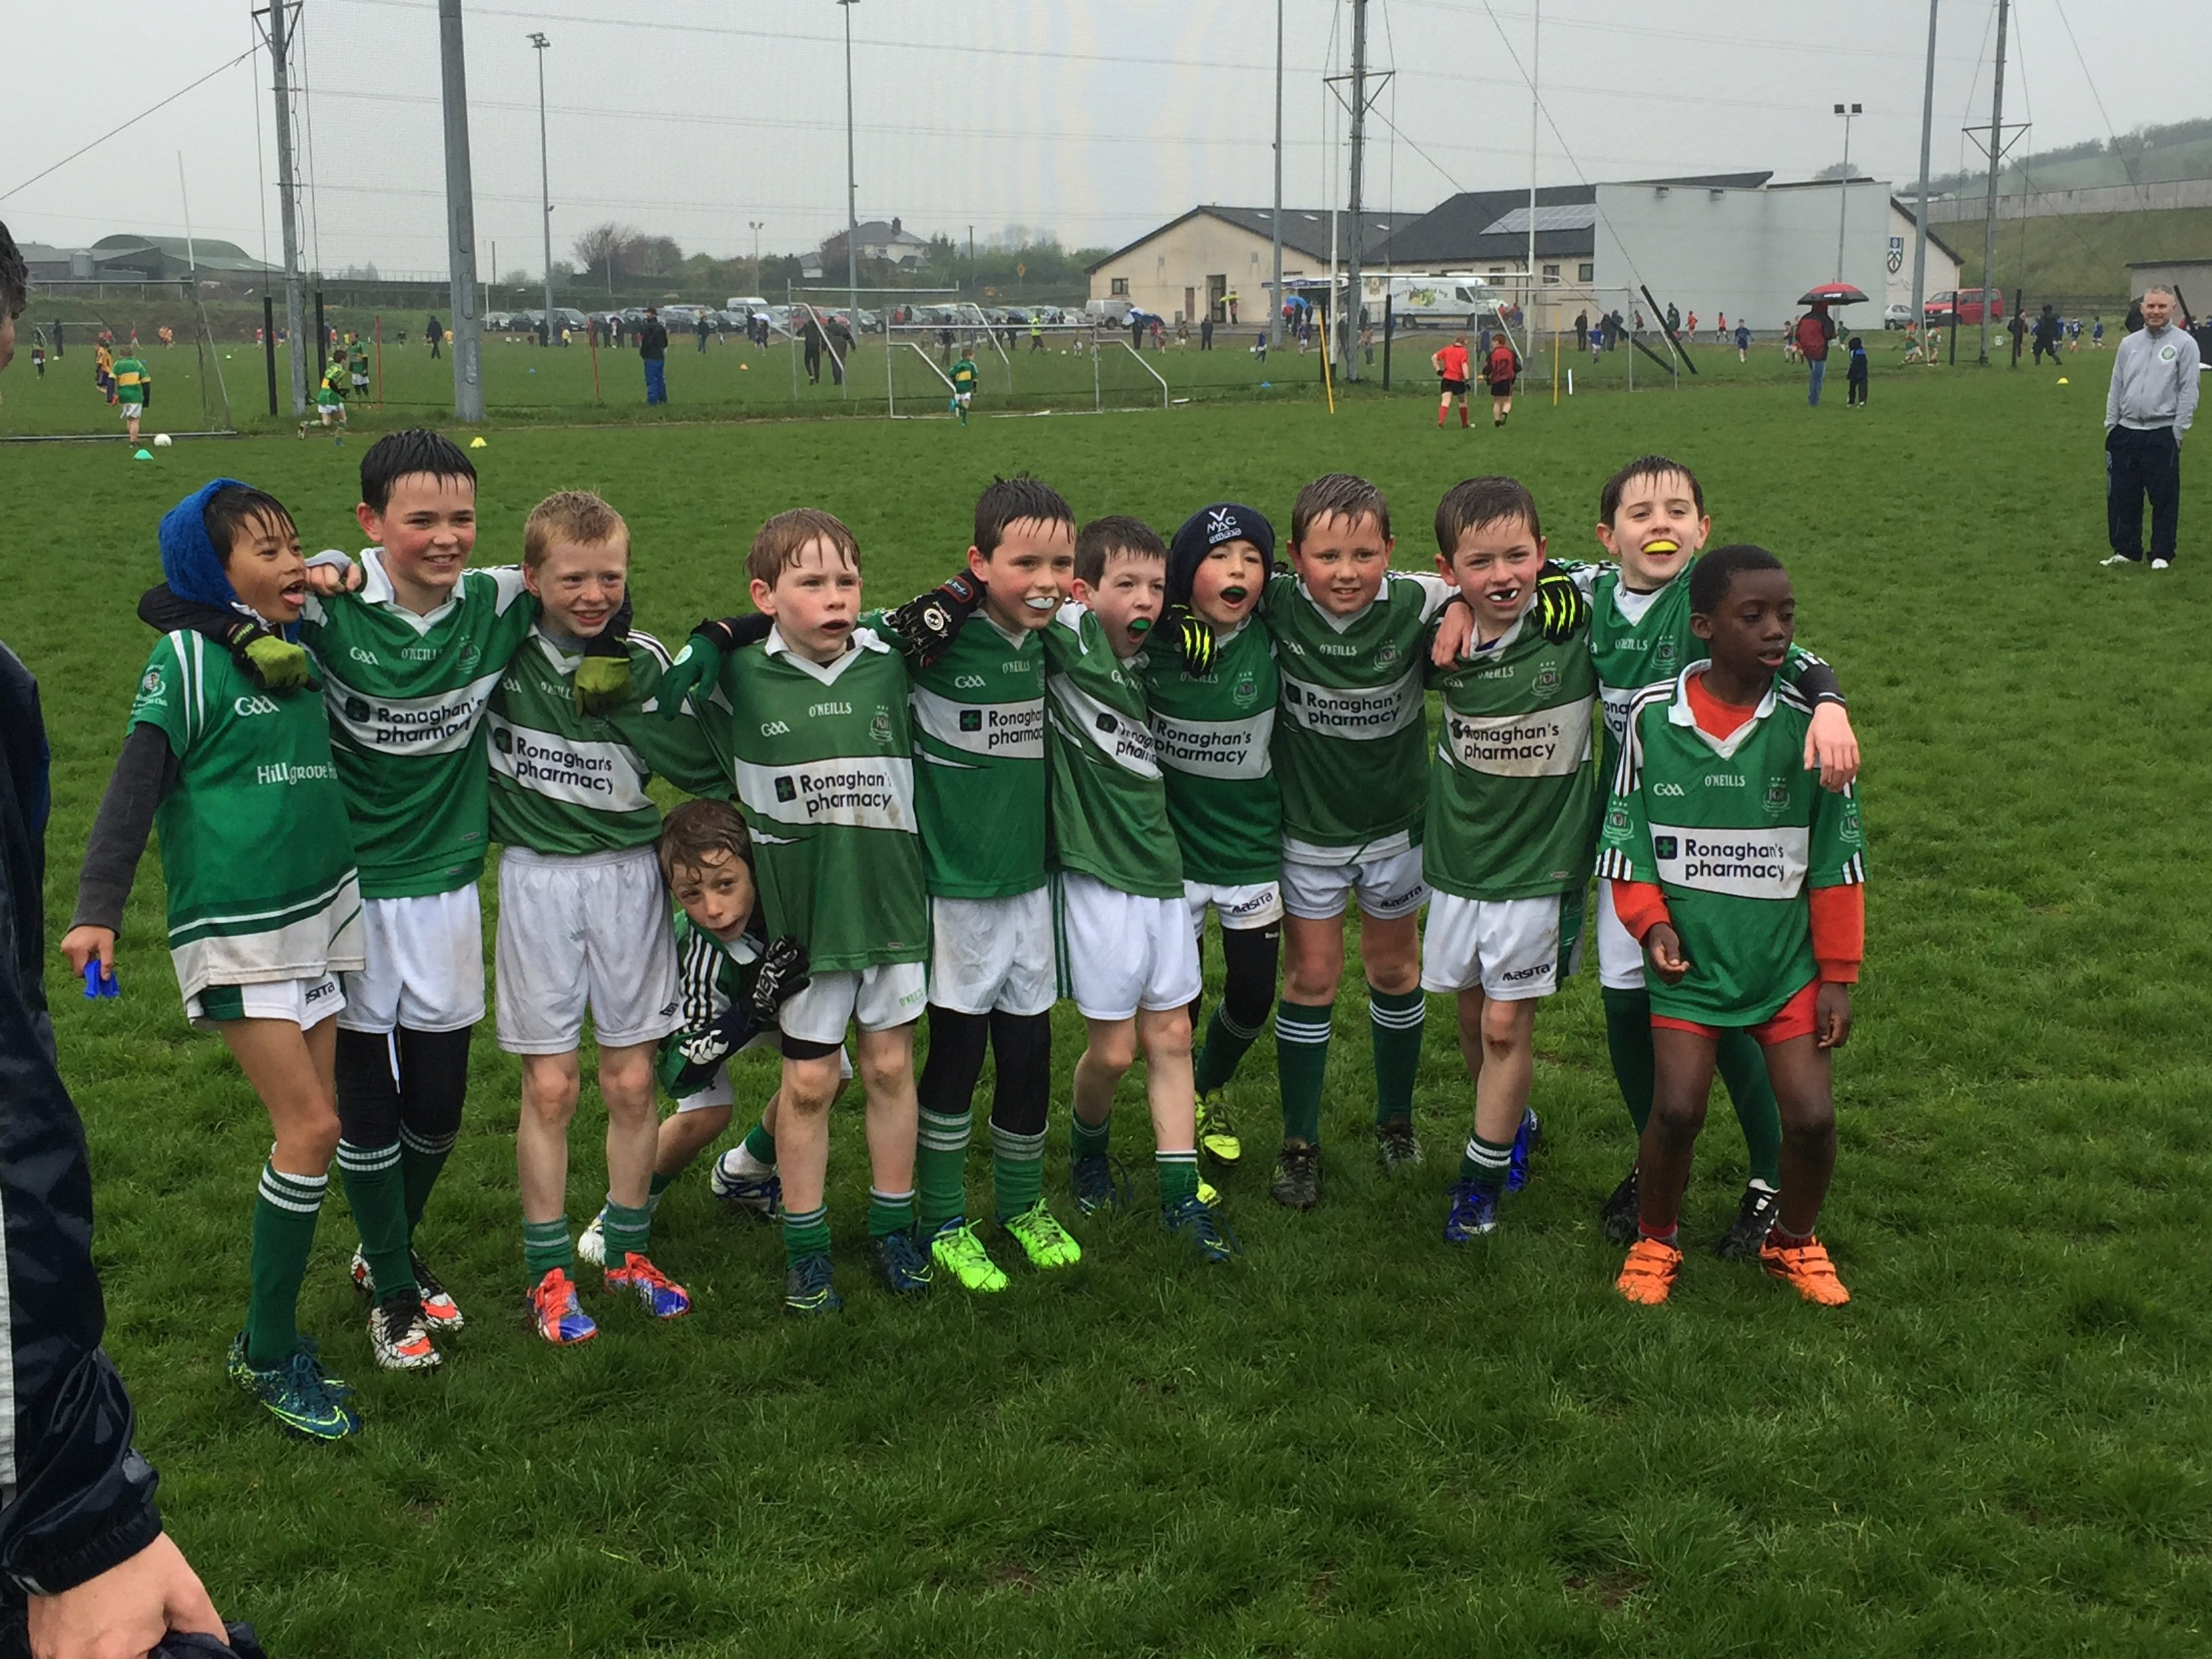 U10 GoGames Blitz takes place in Cloghan